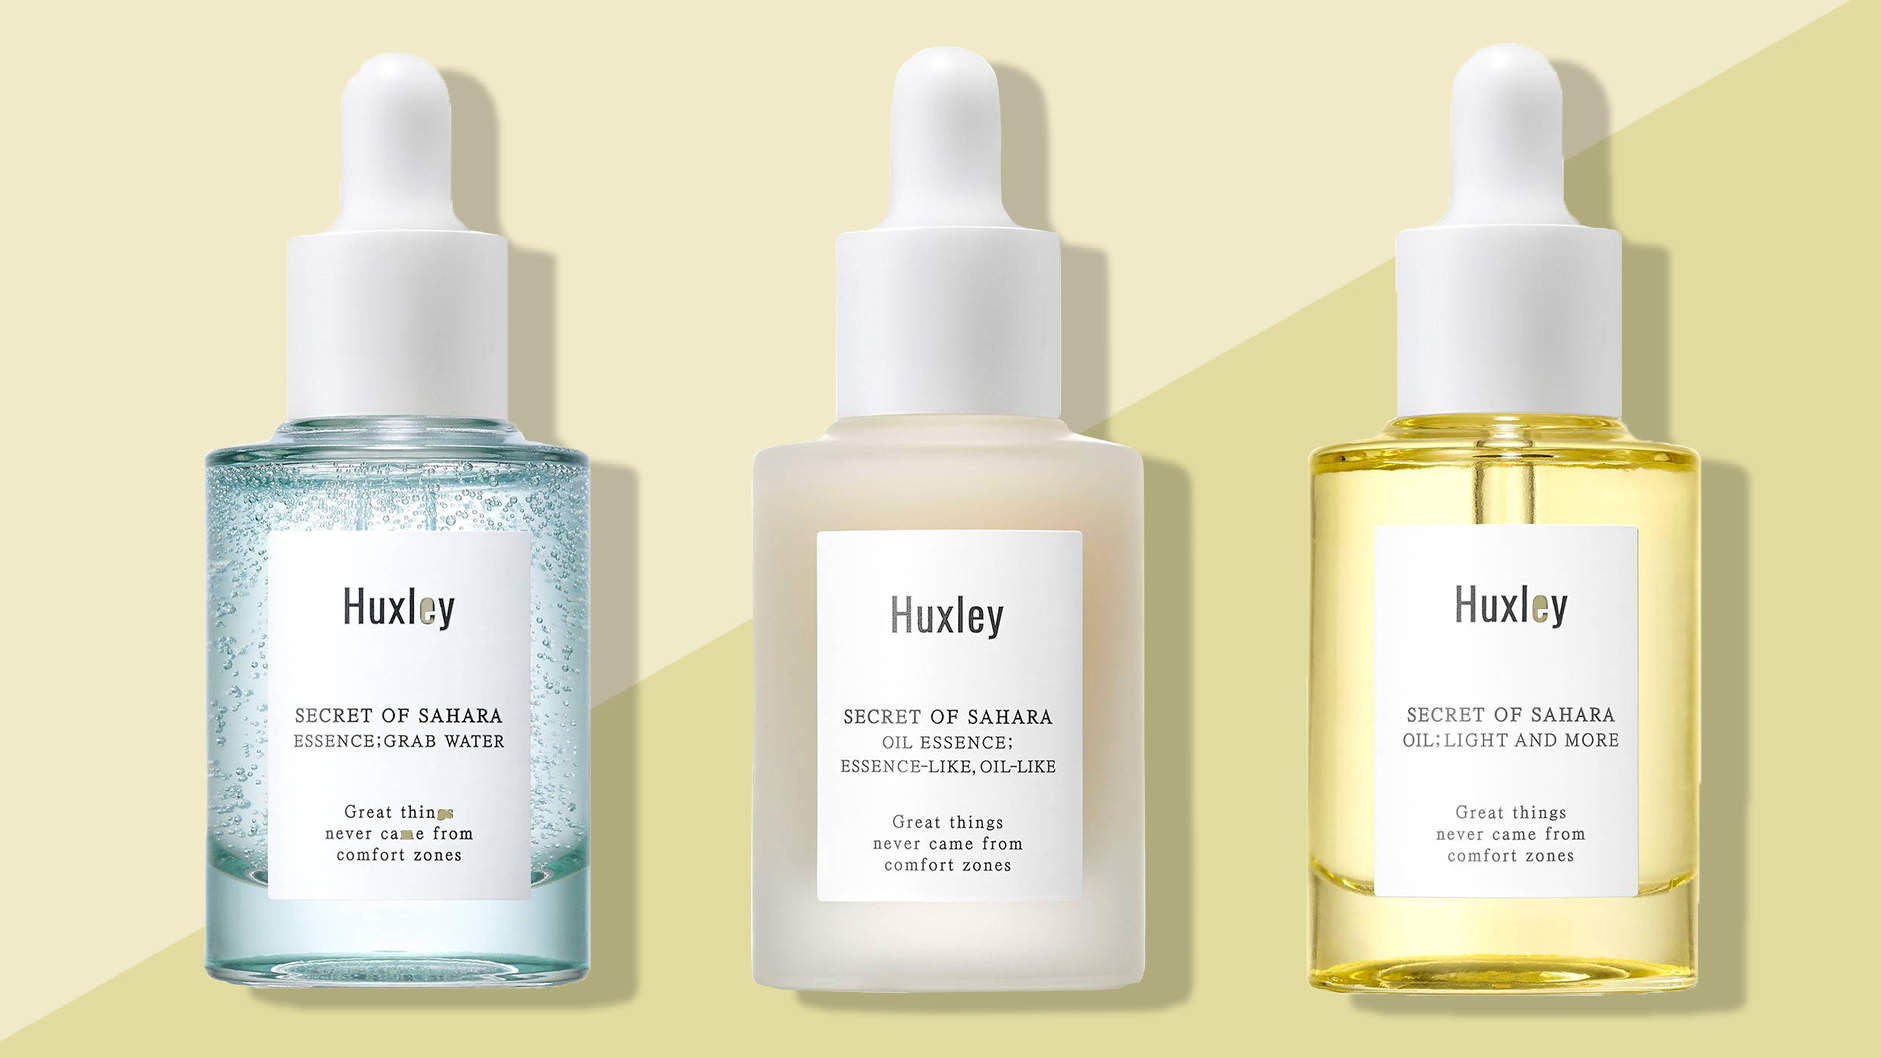 The Best Korean Skincare Oils to Give as Gifts This Year - Health